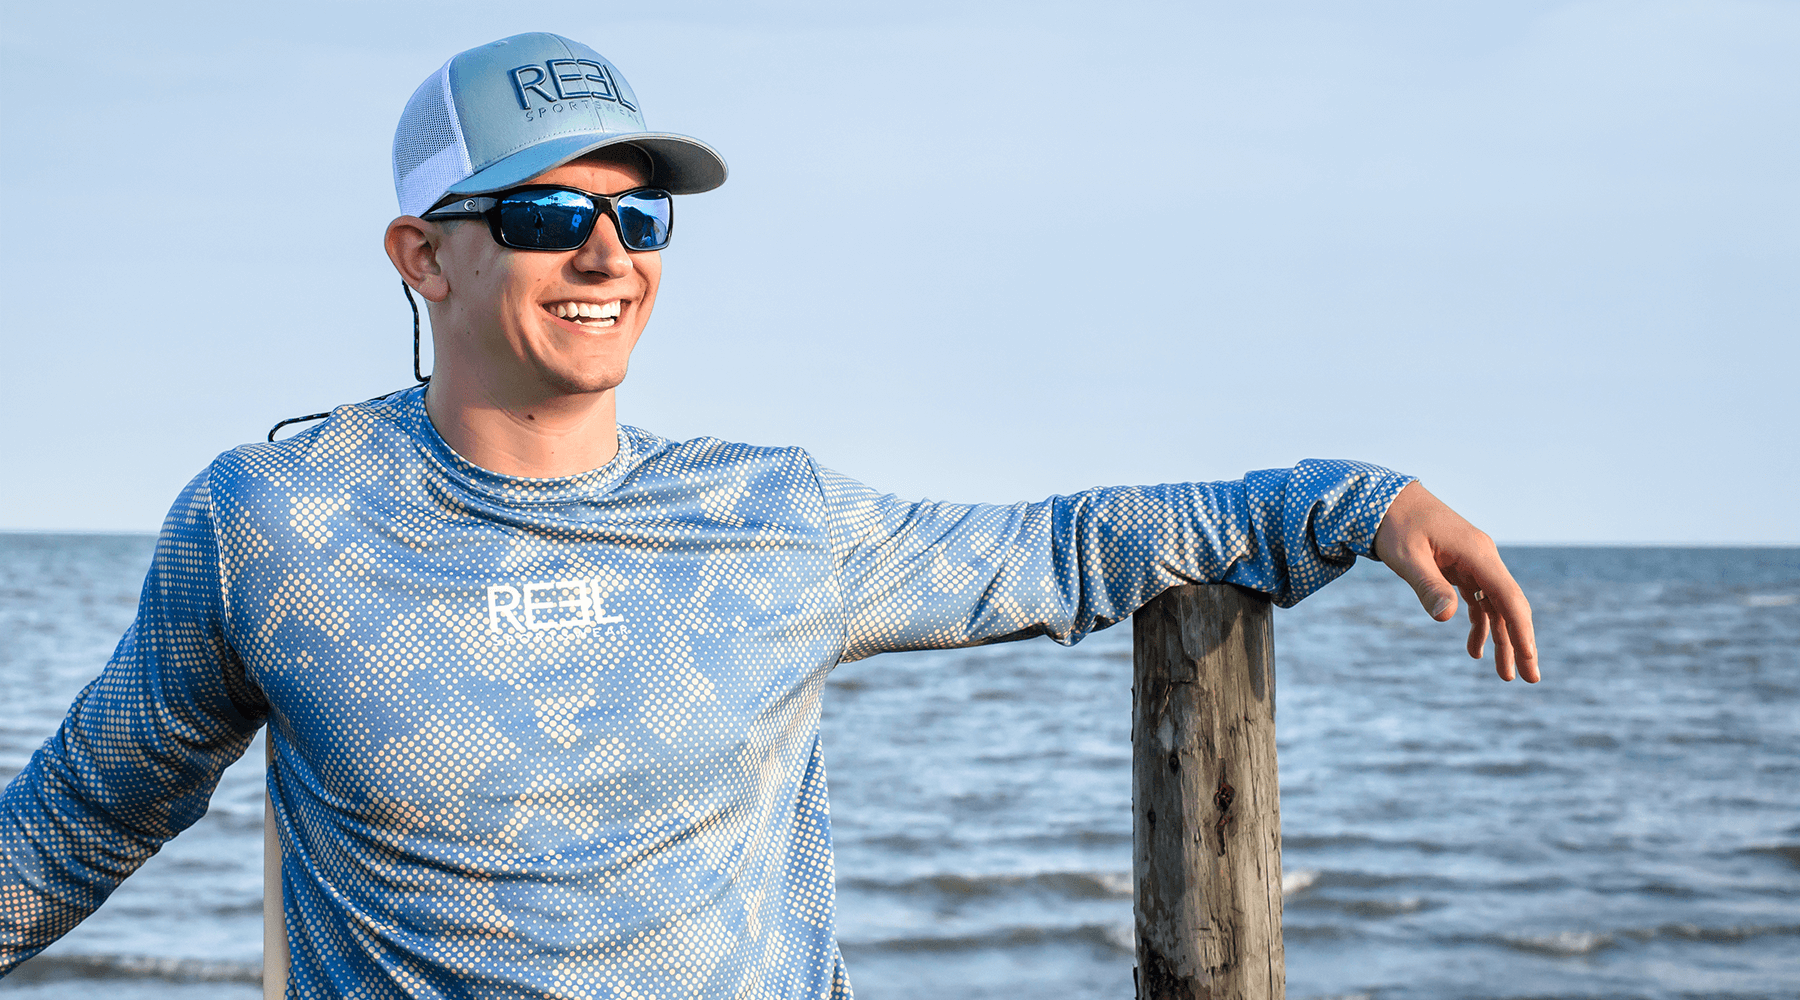 Reel Sportswear Performance fishing